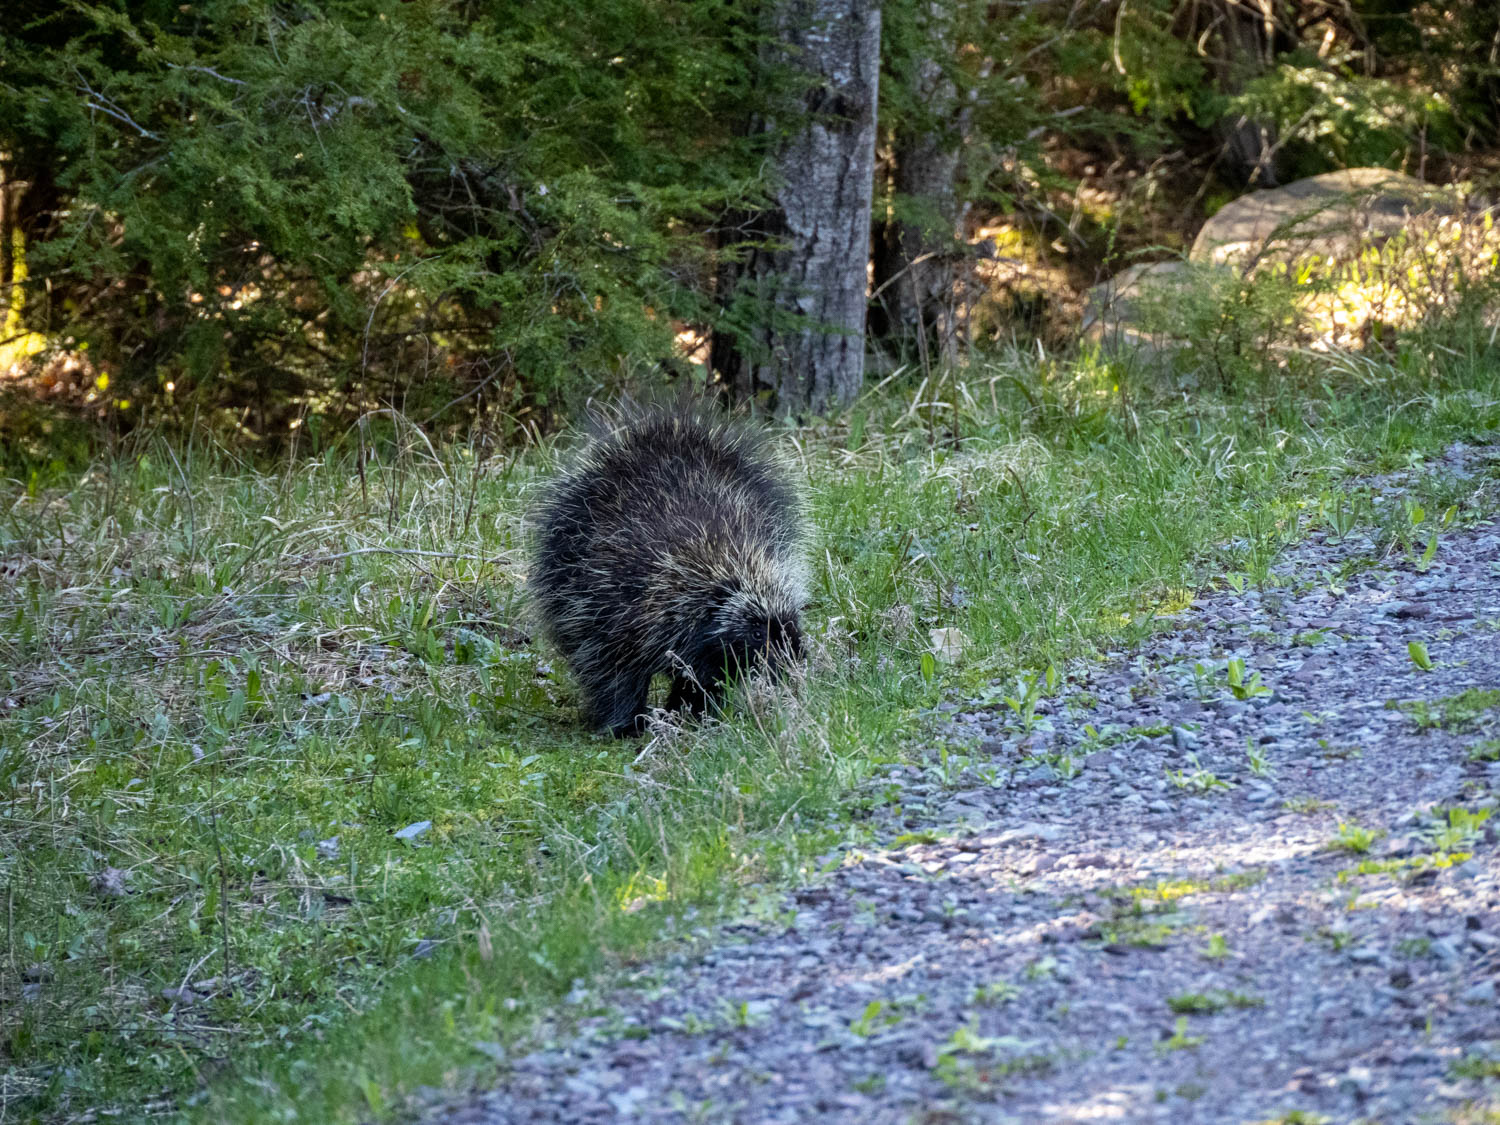 The porcupine, as I first saw 'em, looking for food.